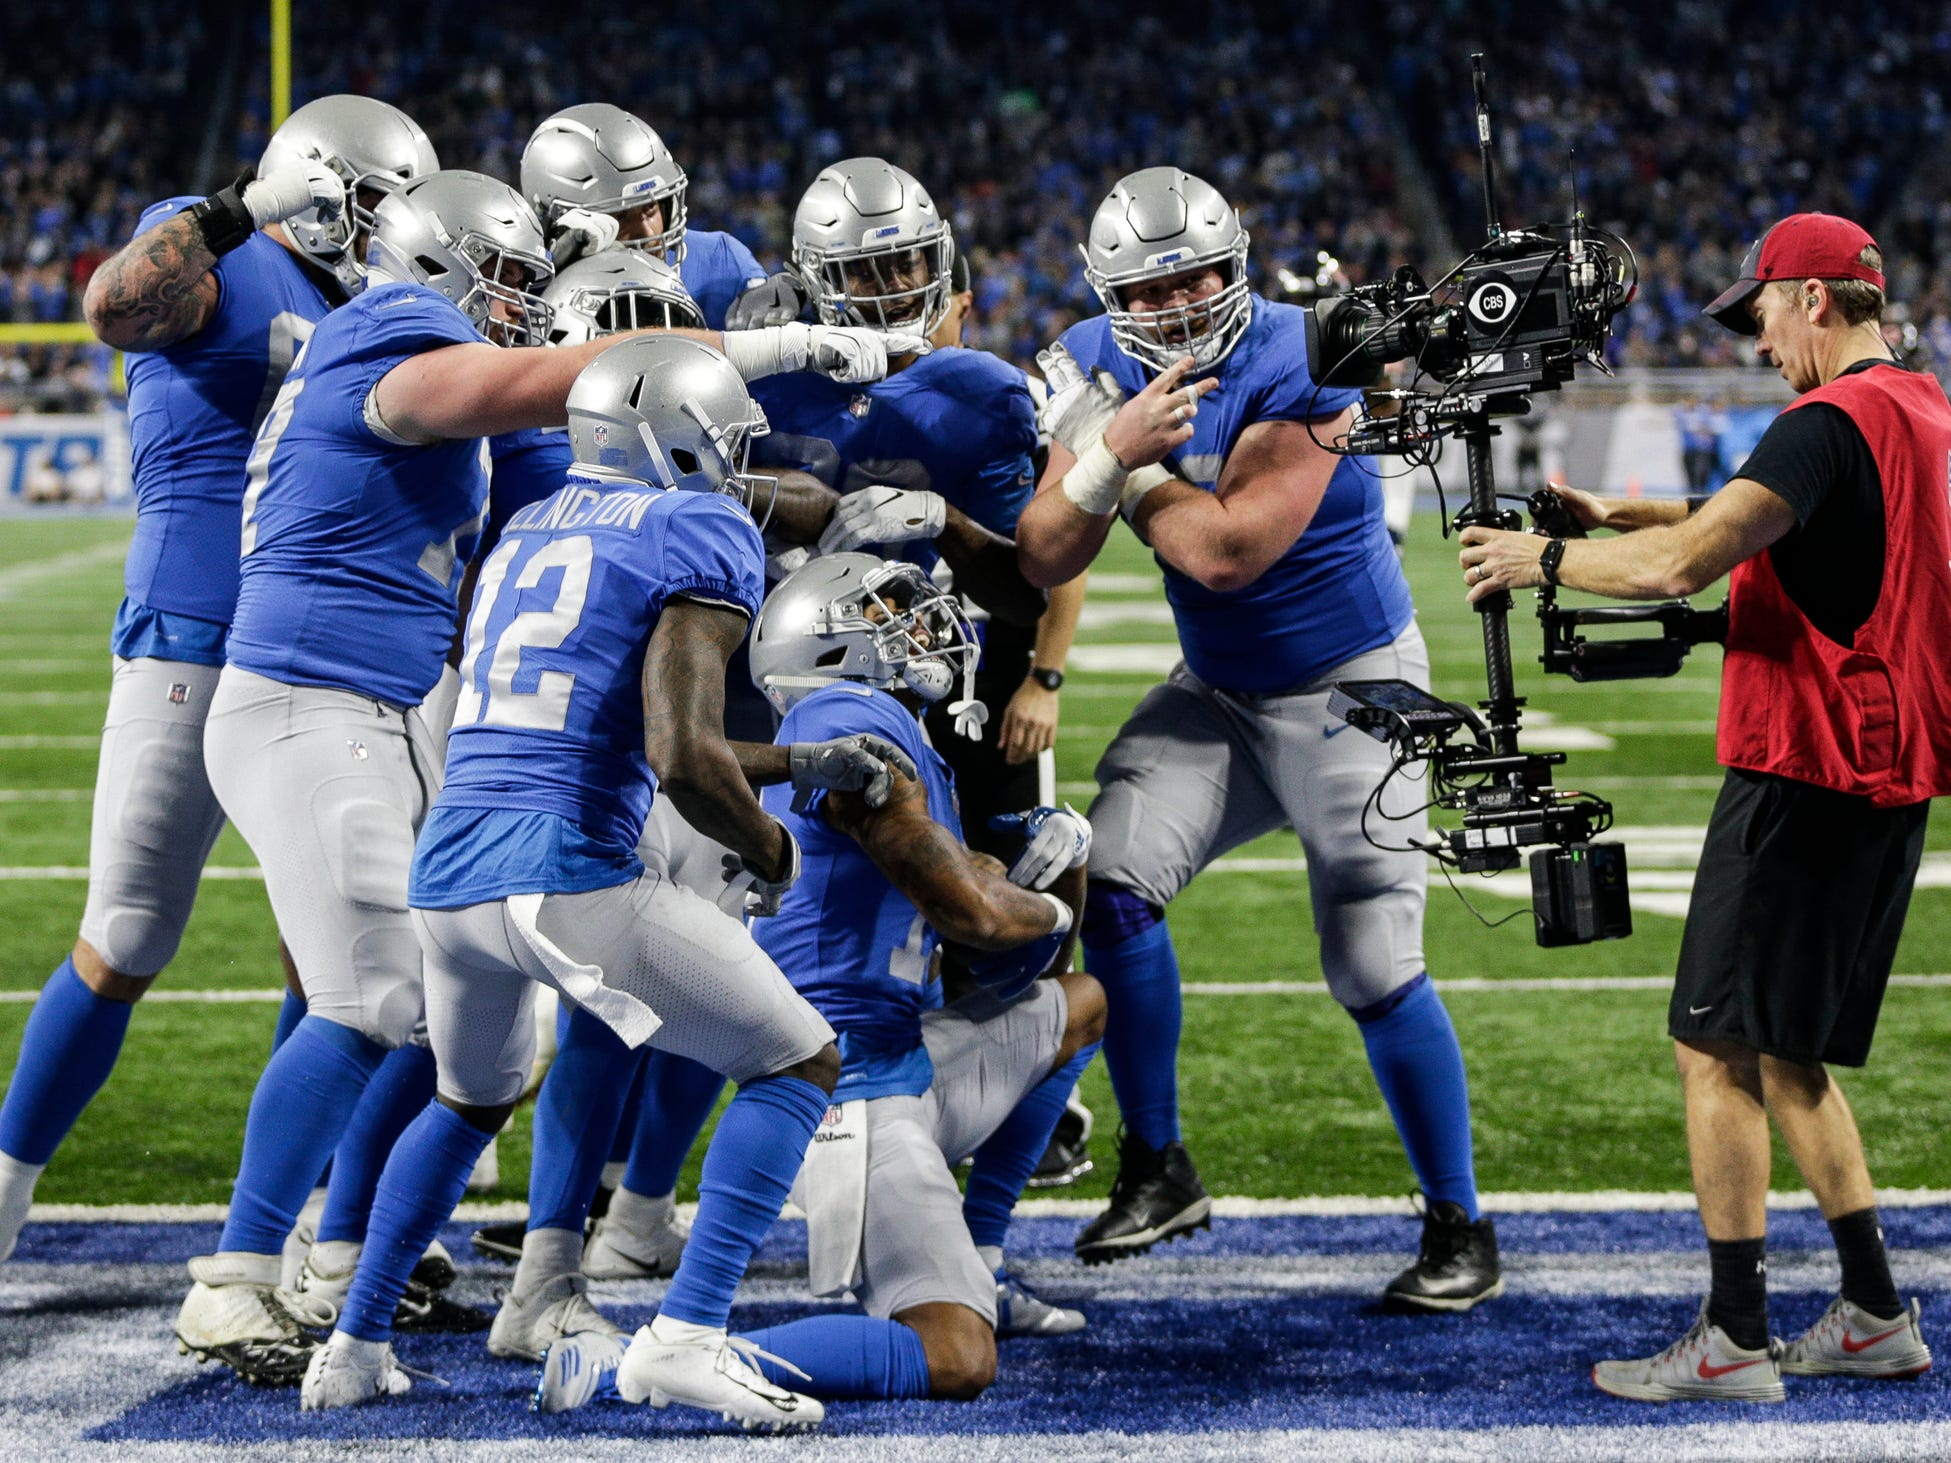 Lions celebrates running back LeGarrette Blount's touchdown during the second half of the 23-16 loss to the Bears on Thursday, Nov. 22, 2018, at Ford Field